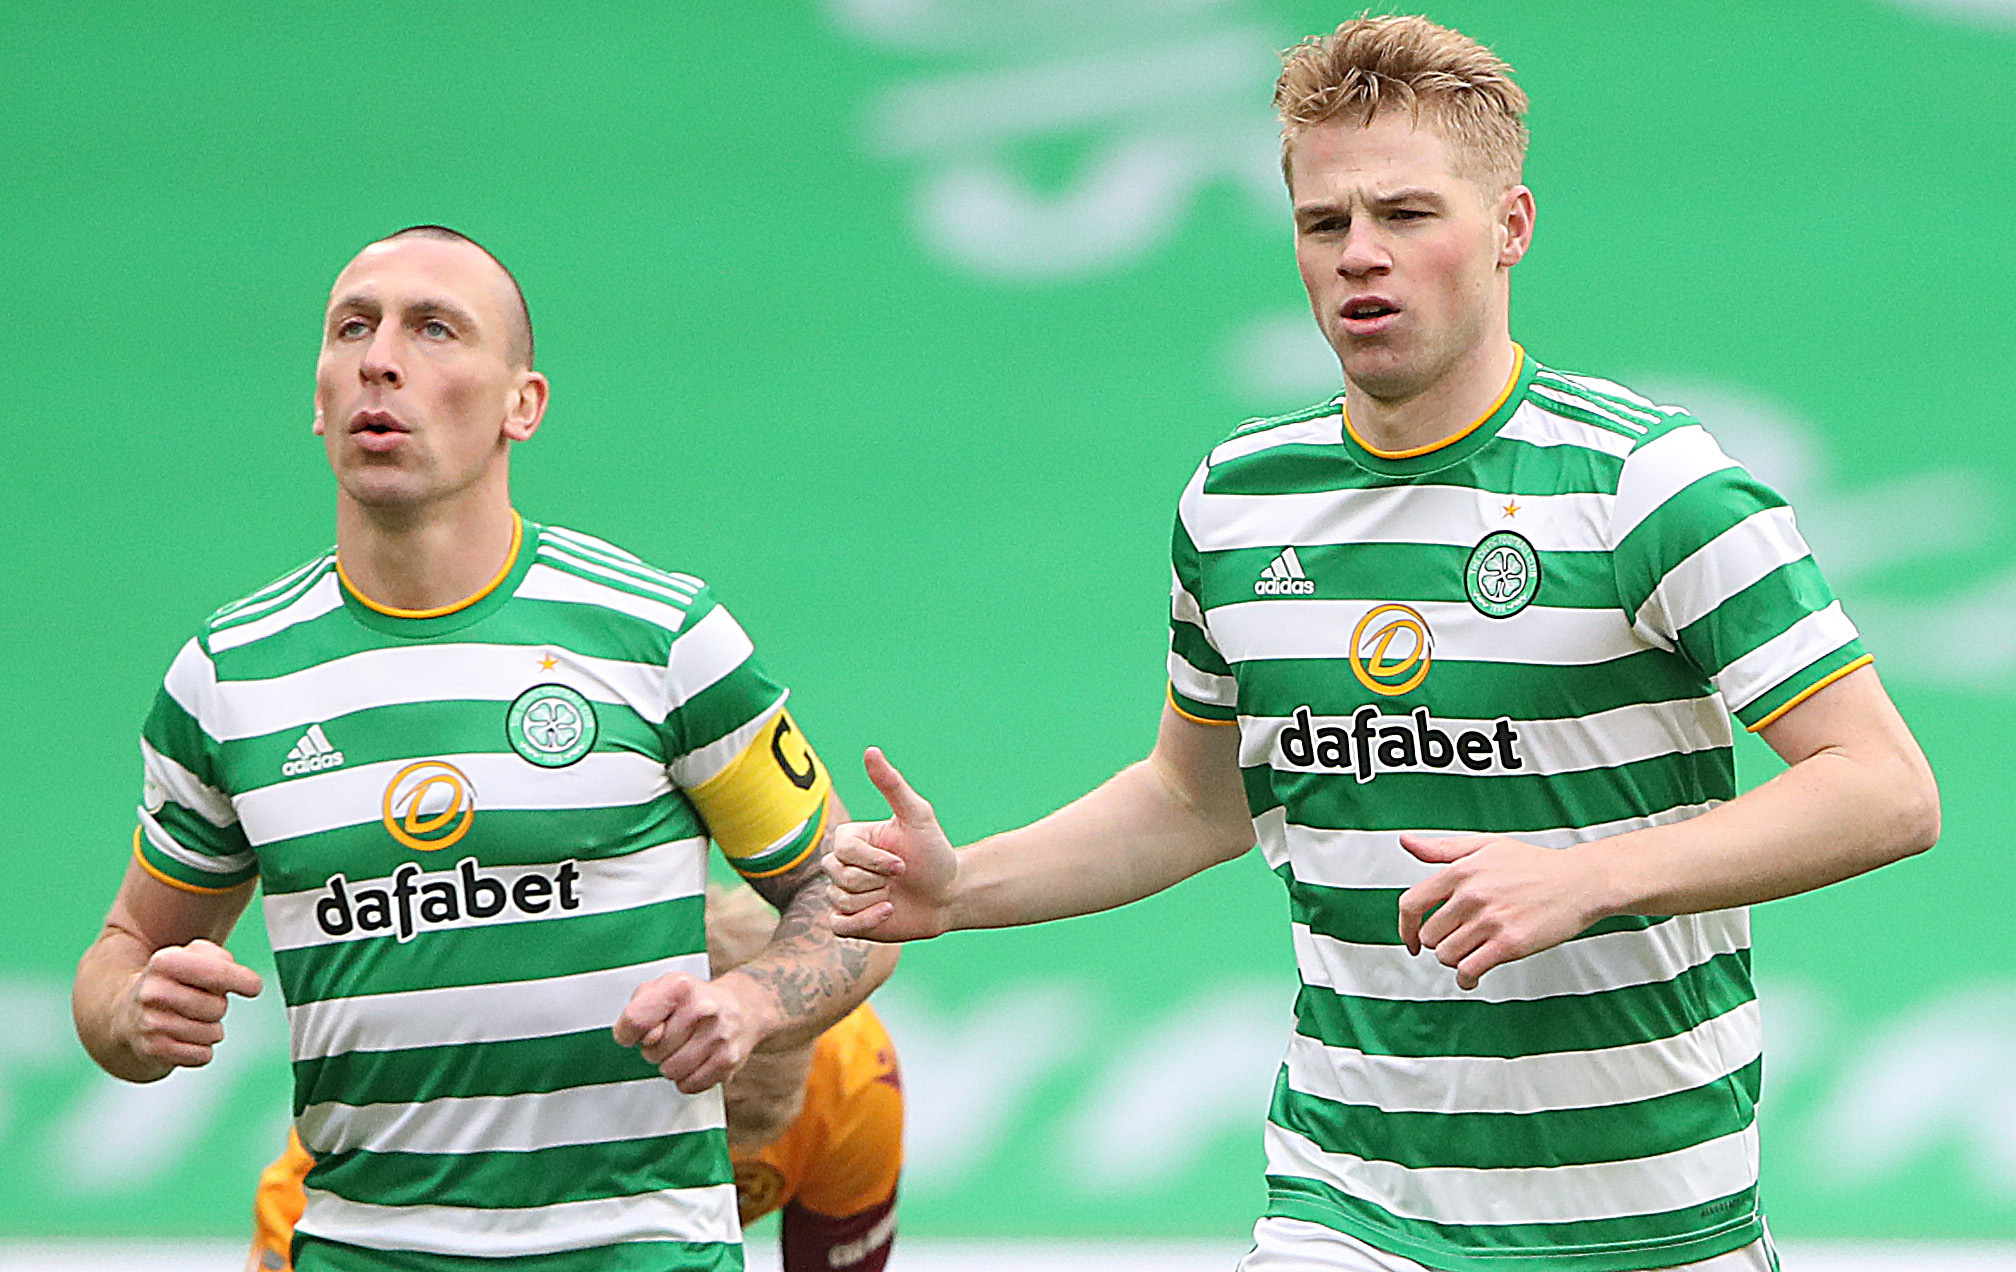 Celtic 2 Motherwell 1: Five things we learned as champions held on to edge out Steelmen